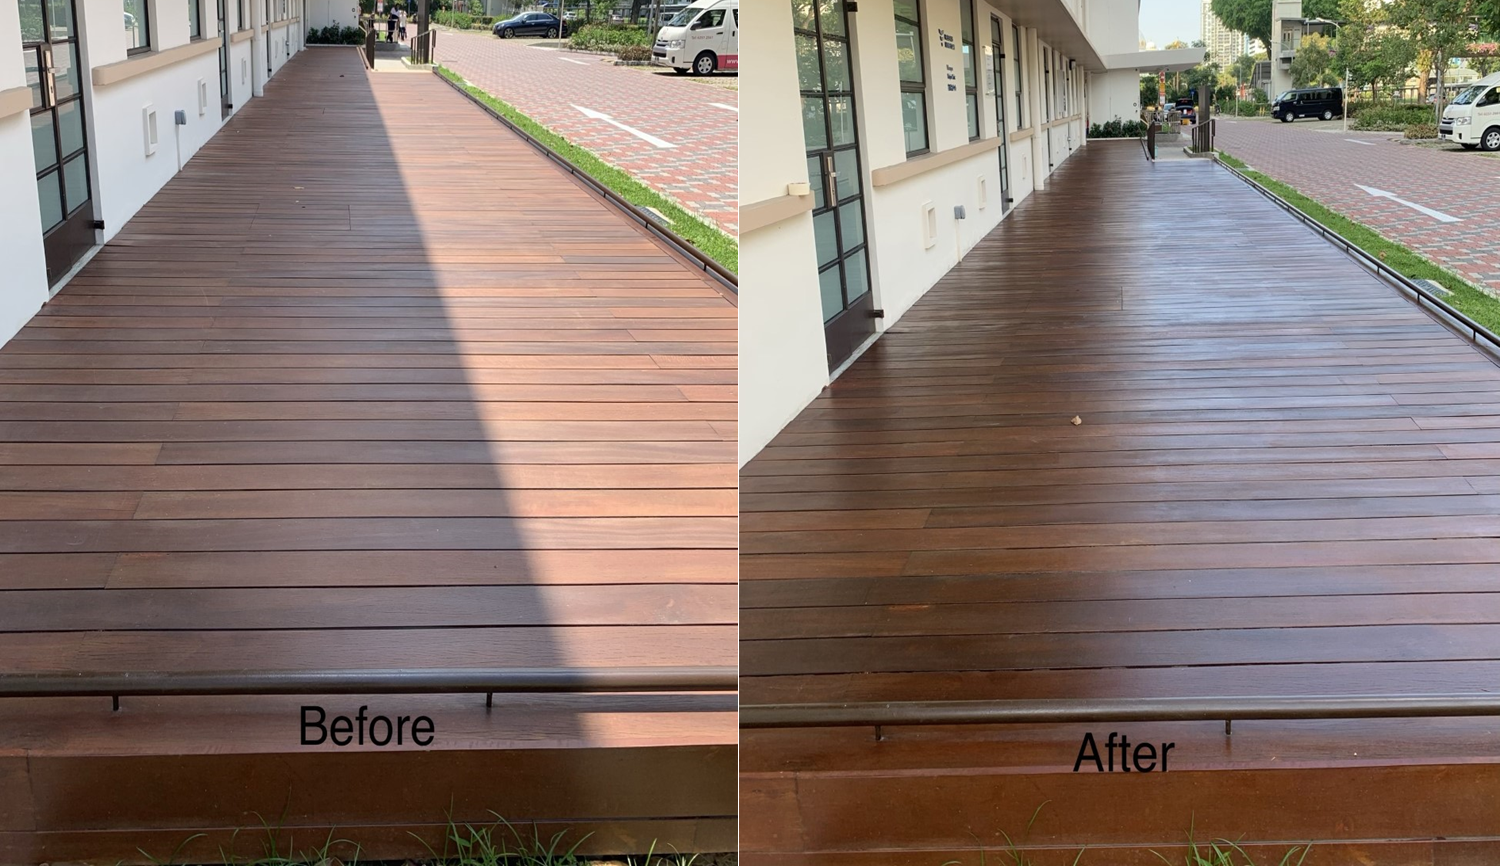 Kwong Wai Shiu Hospital Wooden Decking